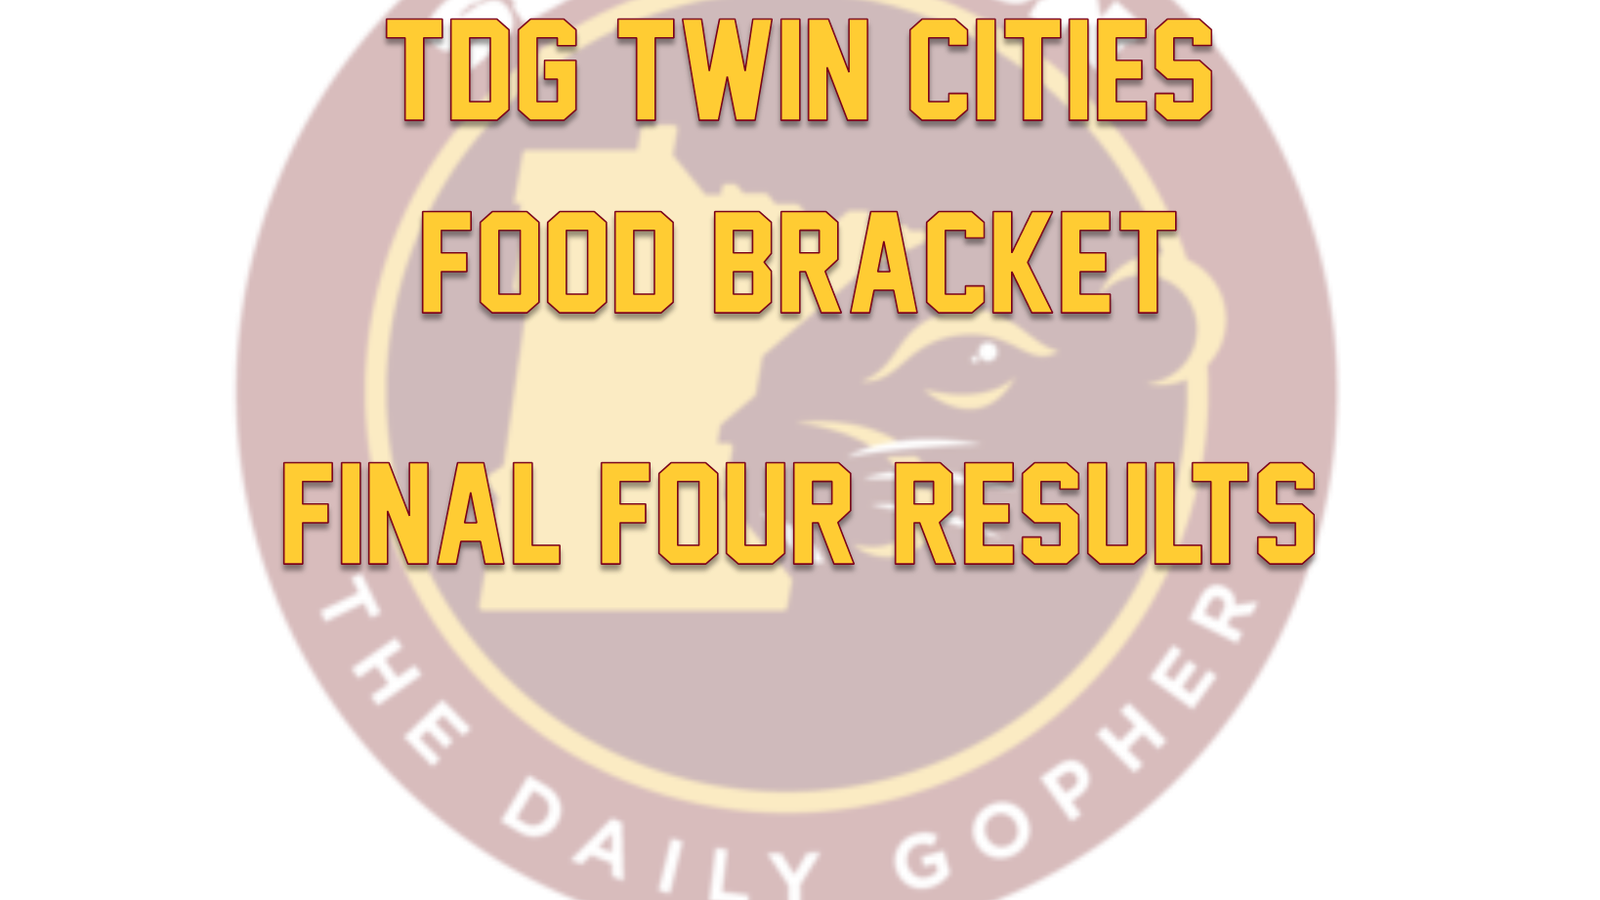 2016_final_four_results.0.0